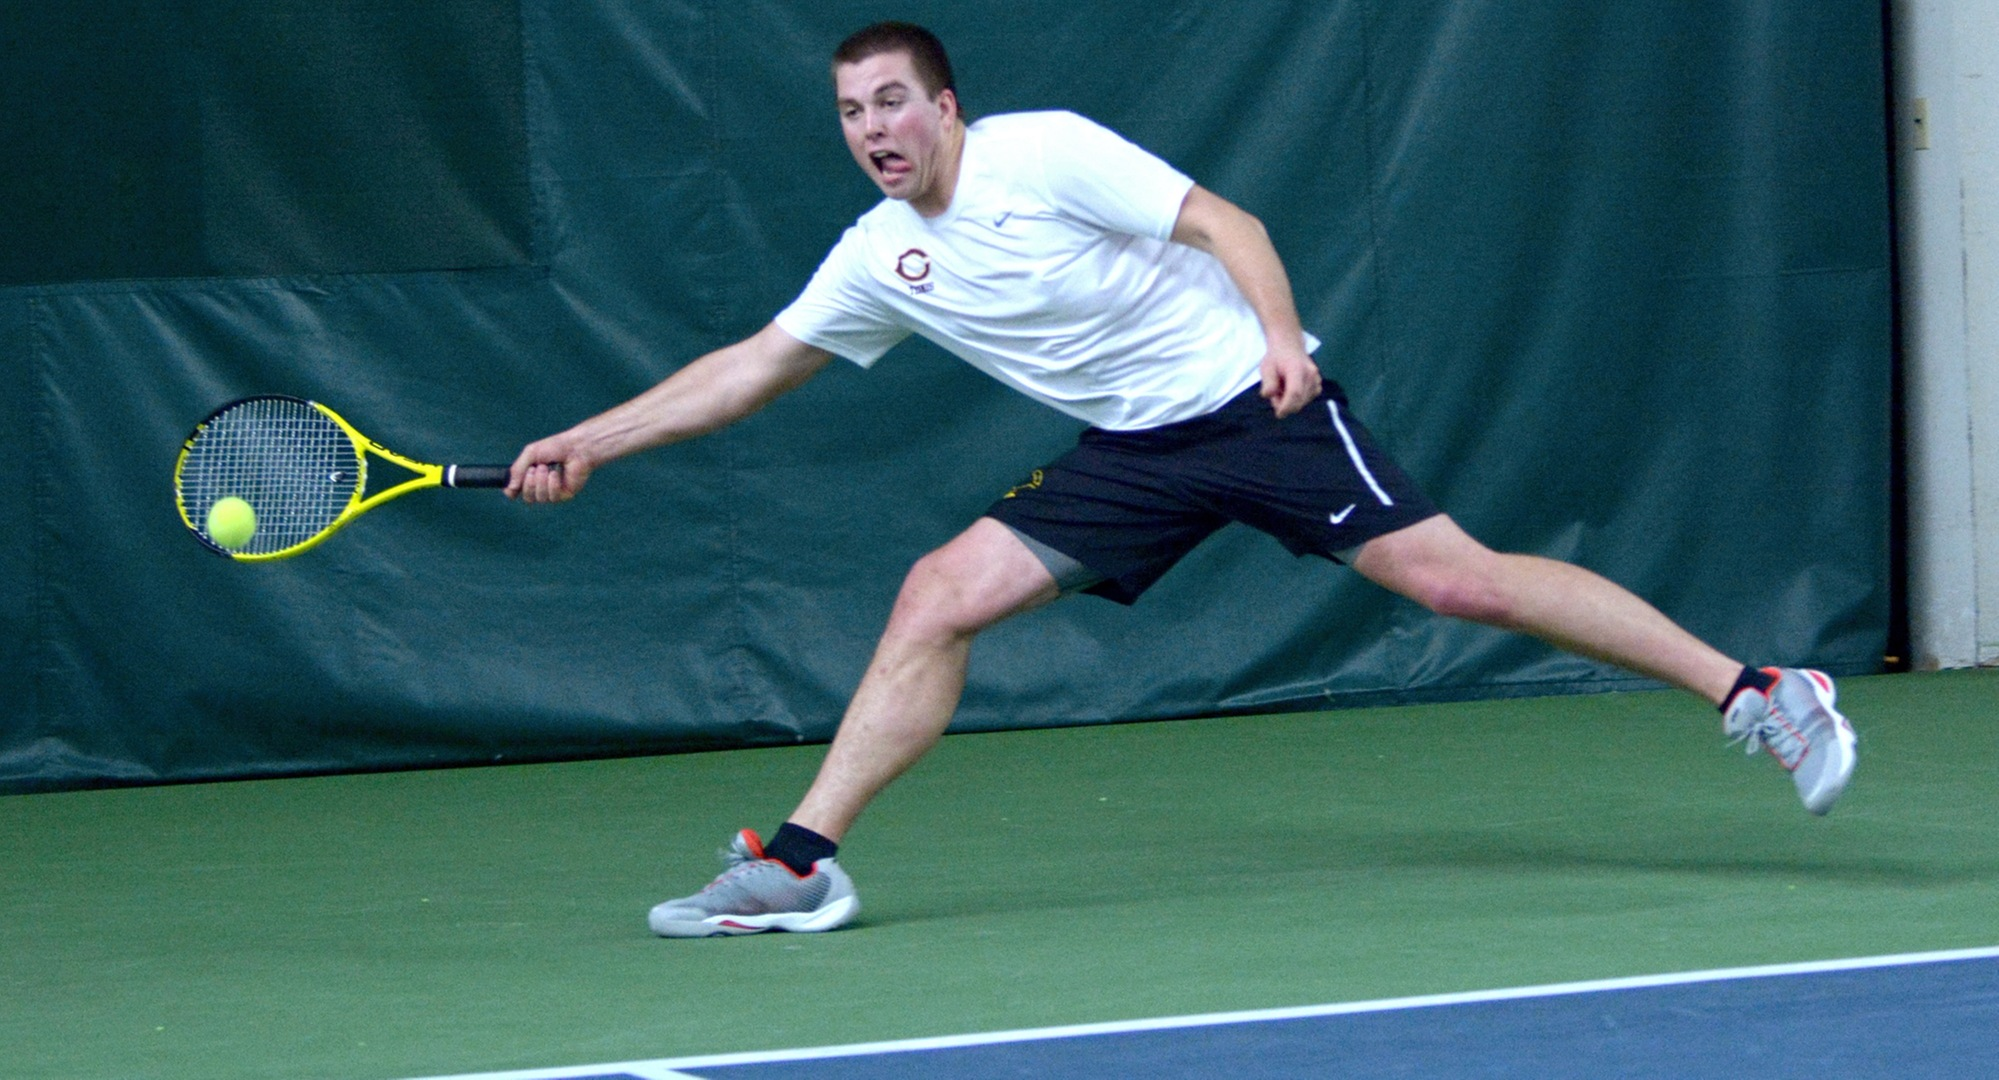 Junior Isaac Toivonen won both his singles and doubles matches in the Cobbers' match against Carleton.